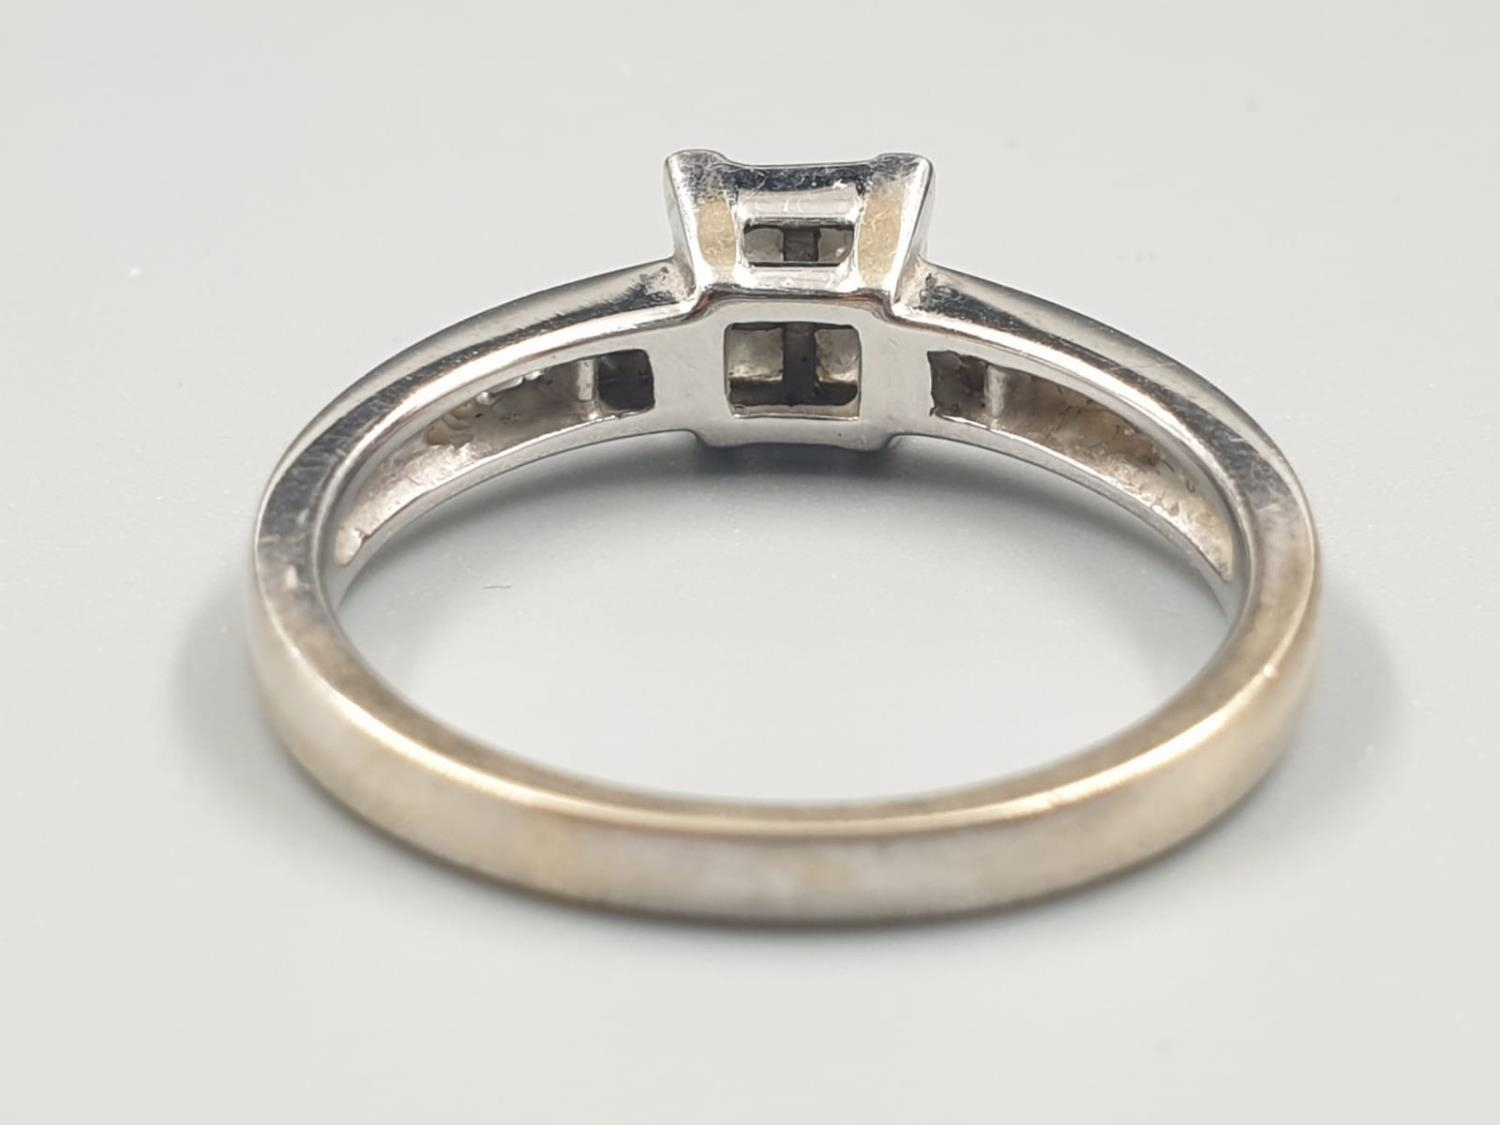 18K WHITE GOLD DIAMOND CLUSTER RING APPROX 0.45CT DIAMONDS WEIGHT 4.5G SIZE Q - Image 4 of 6